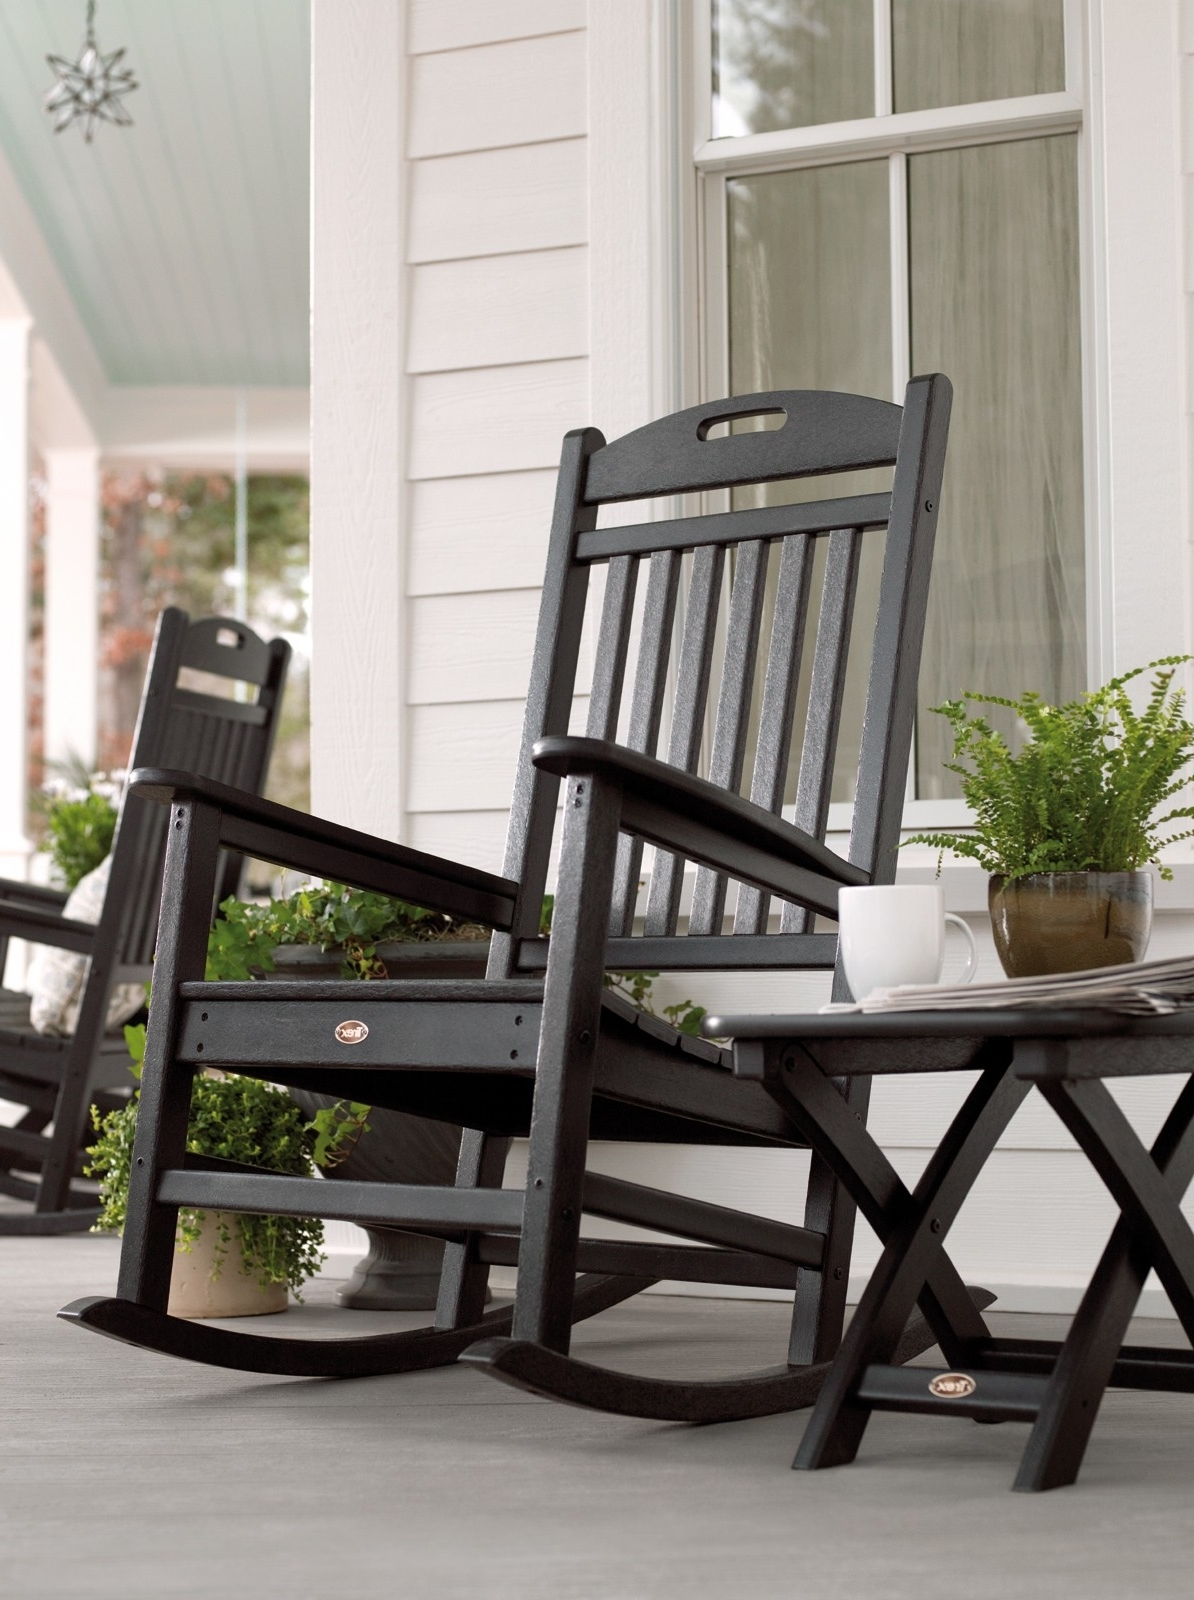 Well Liked Patio Rocking Chairs Sets Regarding Patio & Garden : Outdoor Rocking Chair Seat Cushions Outdoor Rocking (View 14 of 15)